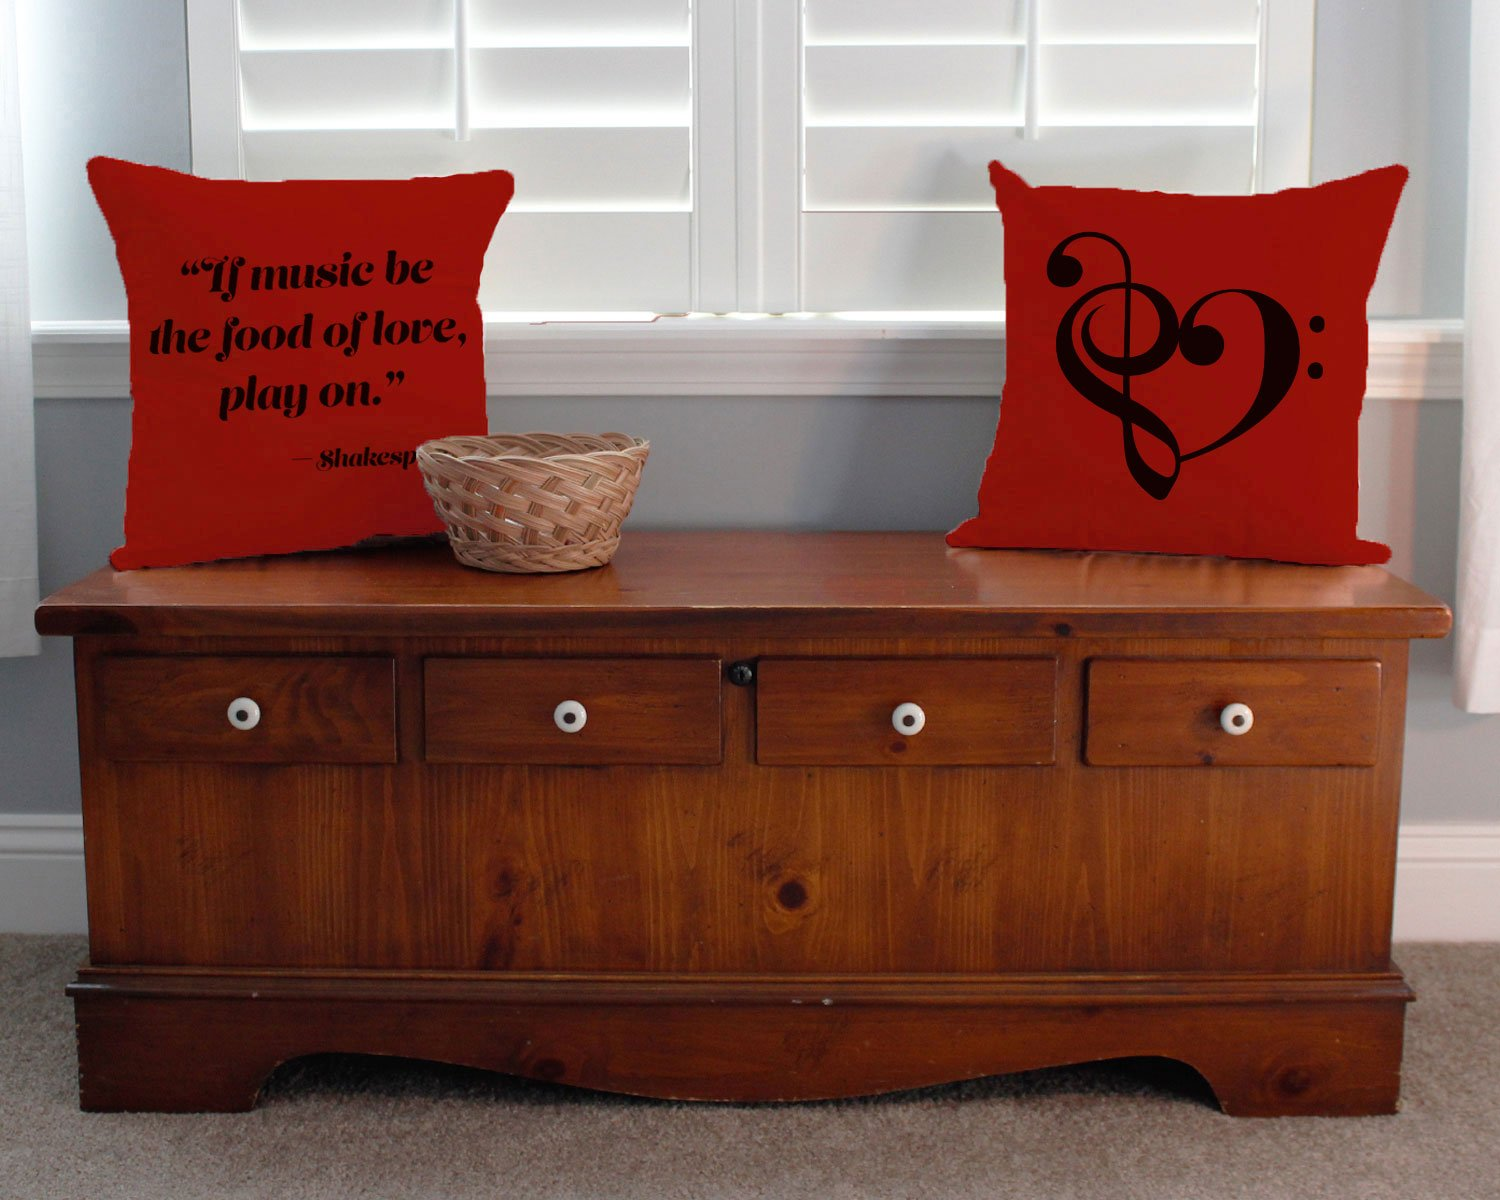 Set of 2 RoomCraft Music is the Food of Love Throw Pillows 20x20 Square Red Cotton Shakespeare Quote Cushions by RoomCraft (Image #2)